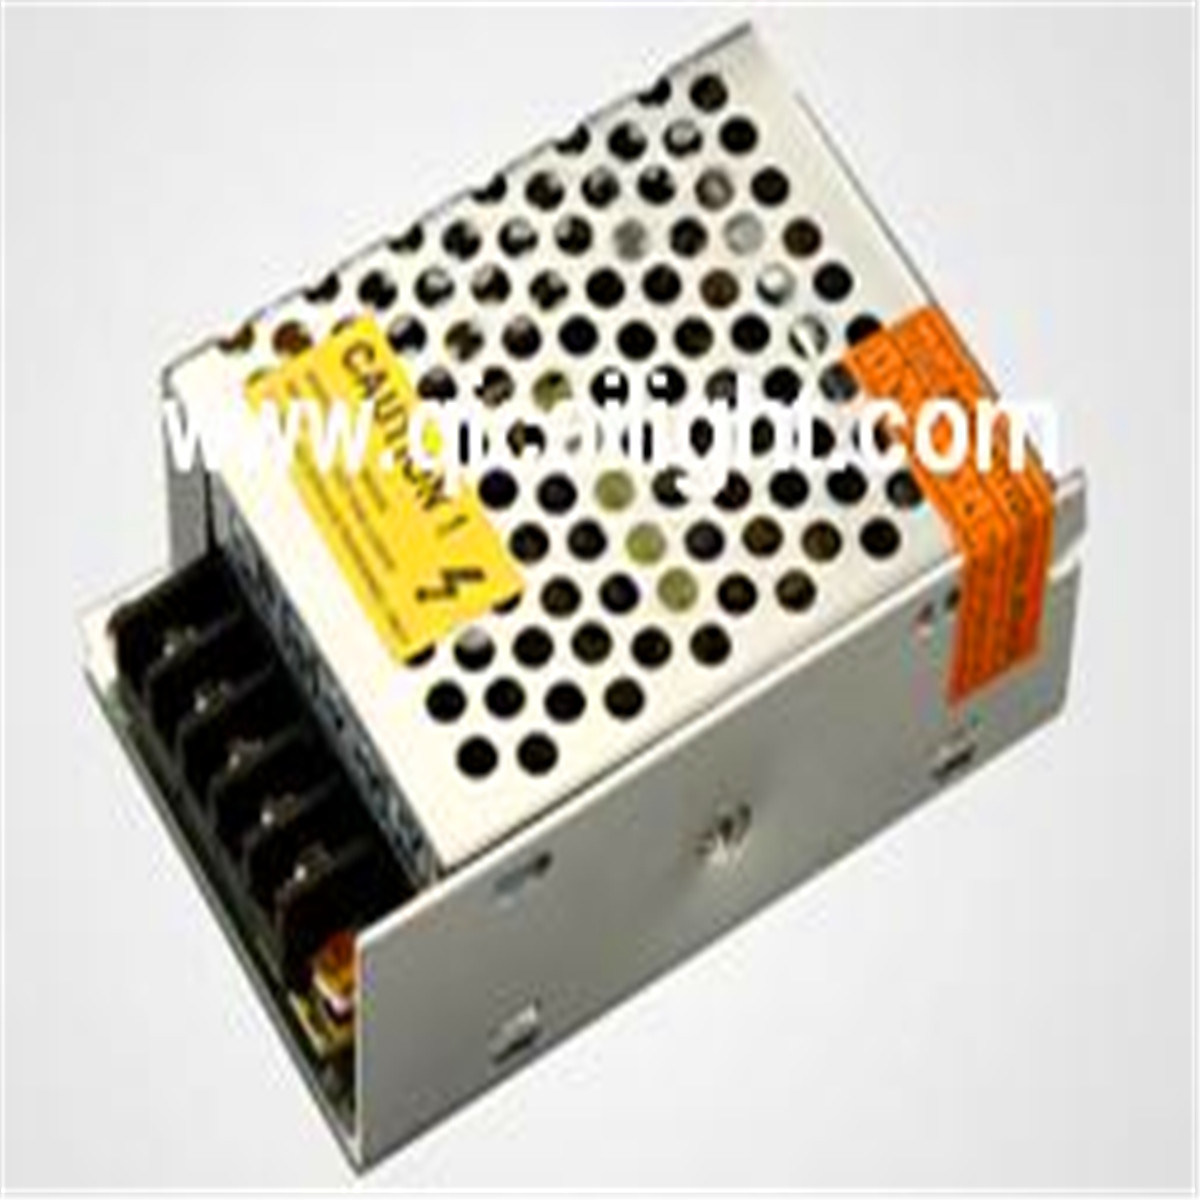 30W Waterproof LED Power Supply (QC-TFW-30W)